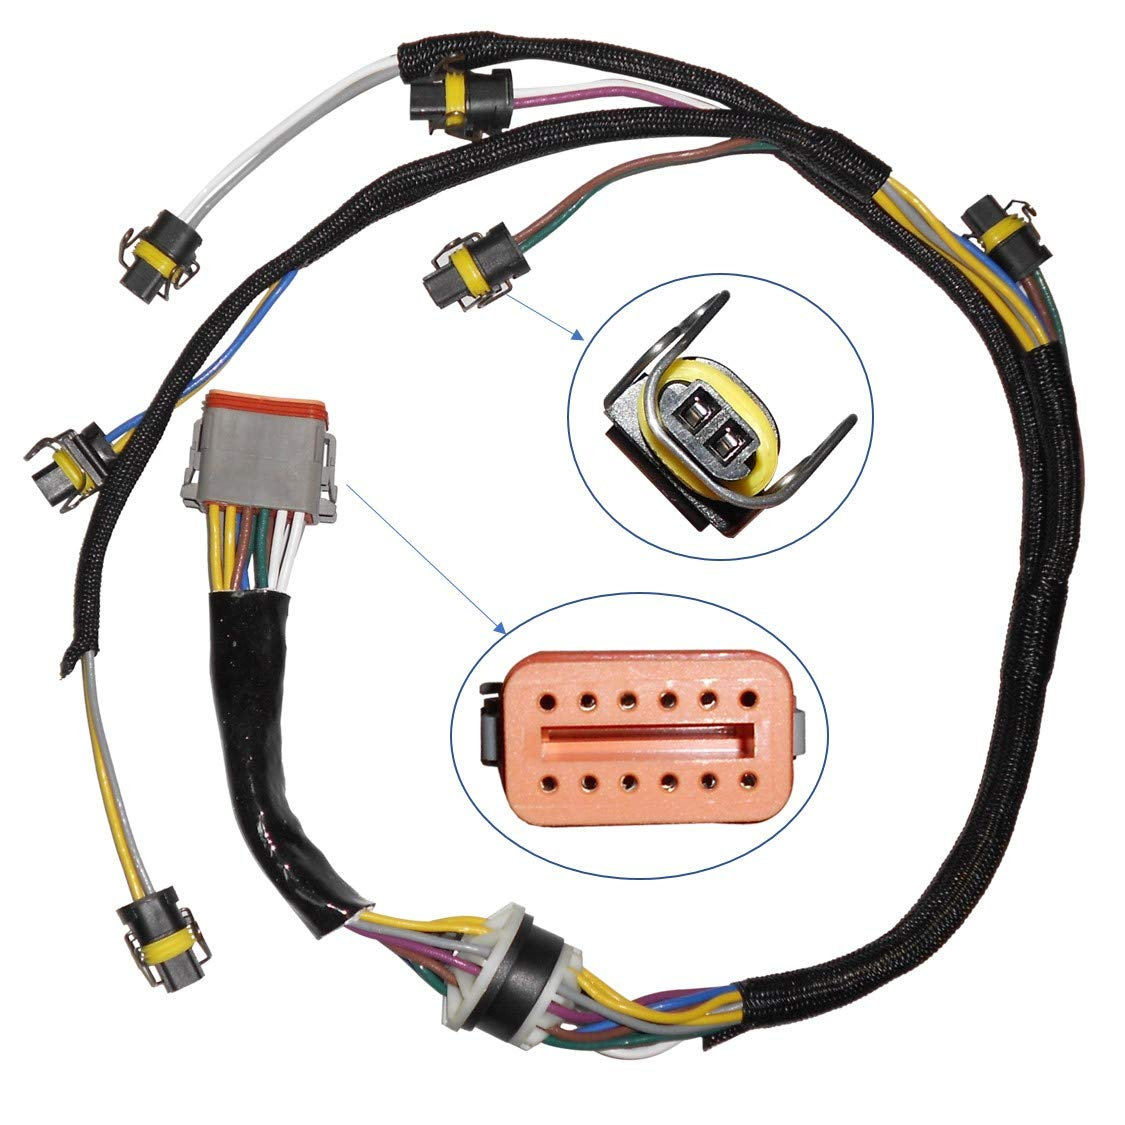 Fuel Injector Wiring Harness Assembly 222 5917 For 5 0 Injection Caterpillar Cat C7 Engine Oe Automotive